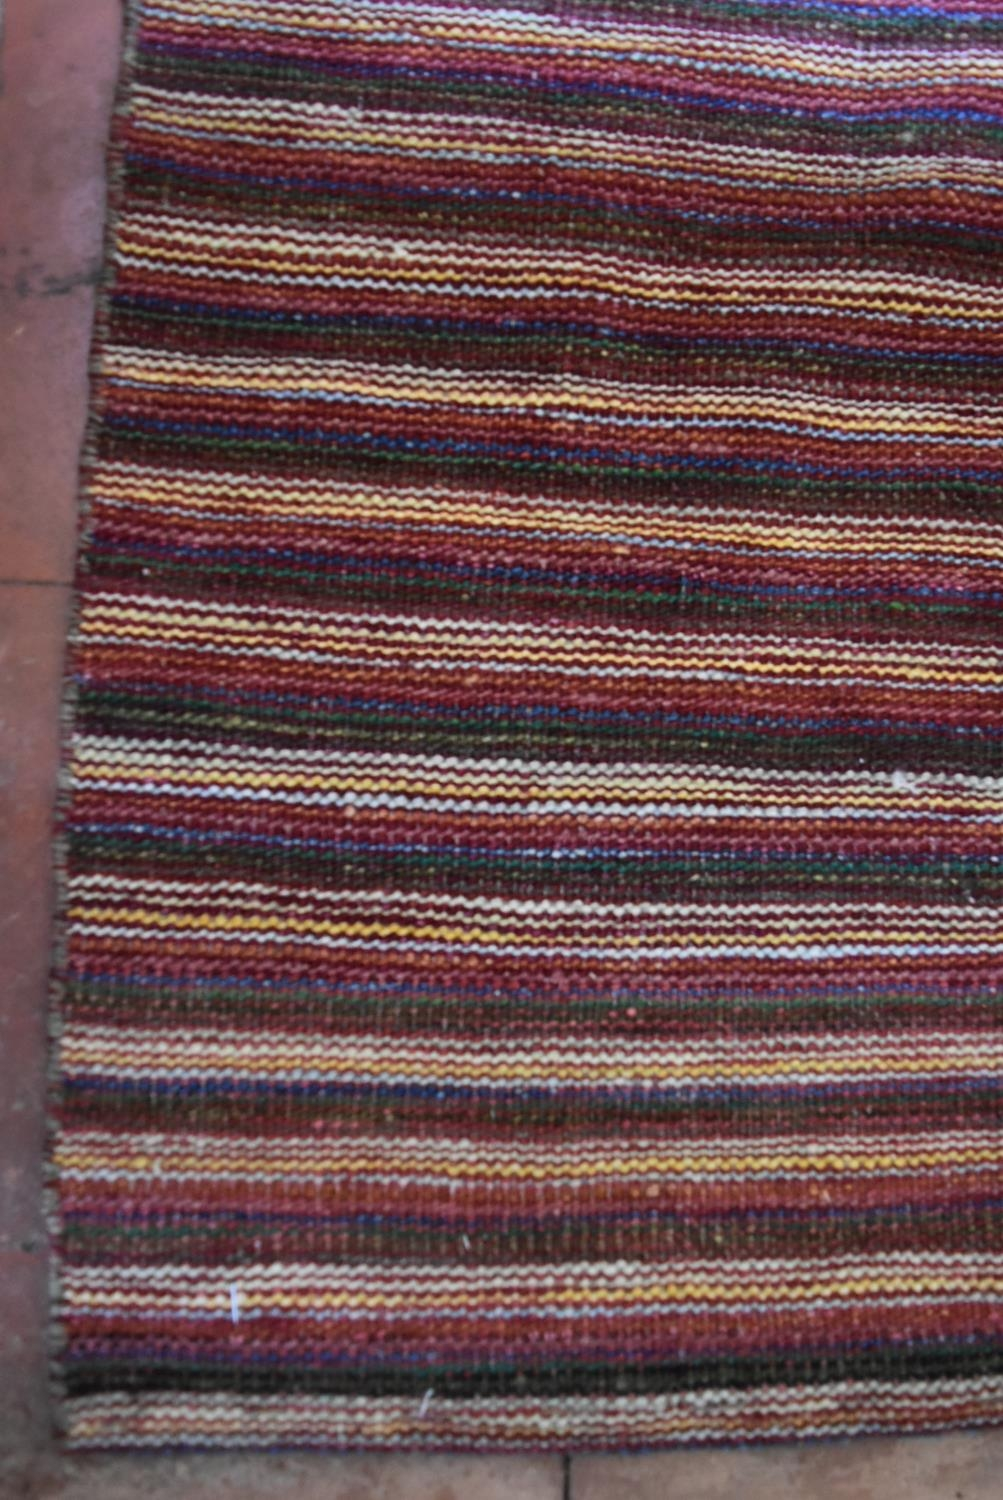 A large Modern Kilim with woven bands in hues of burgundy, cream and blue. L.332xW.247cm - Image 2 of 4